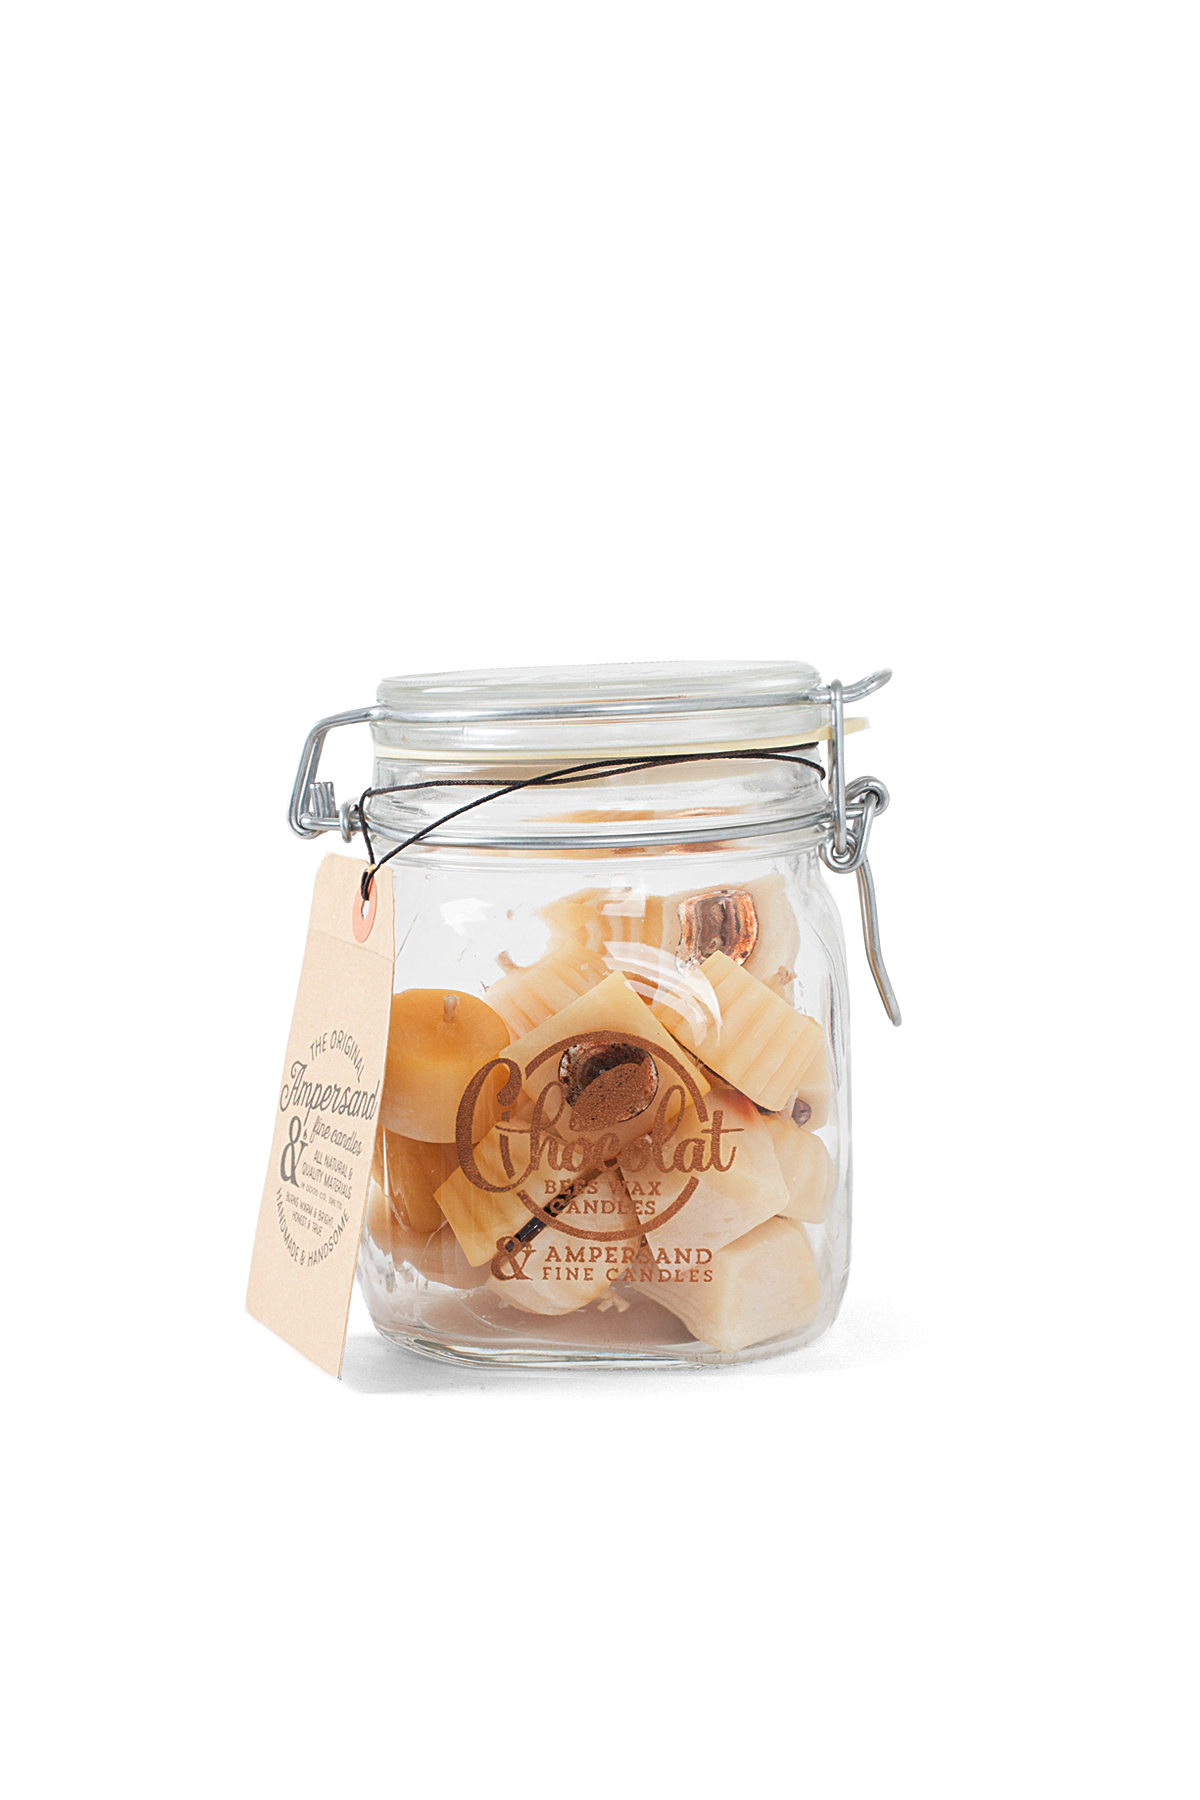 Ampersand Fine Candles : Chocolat Jar (24piece)